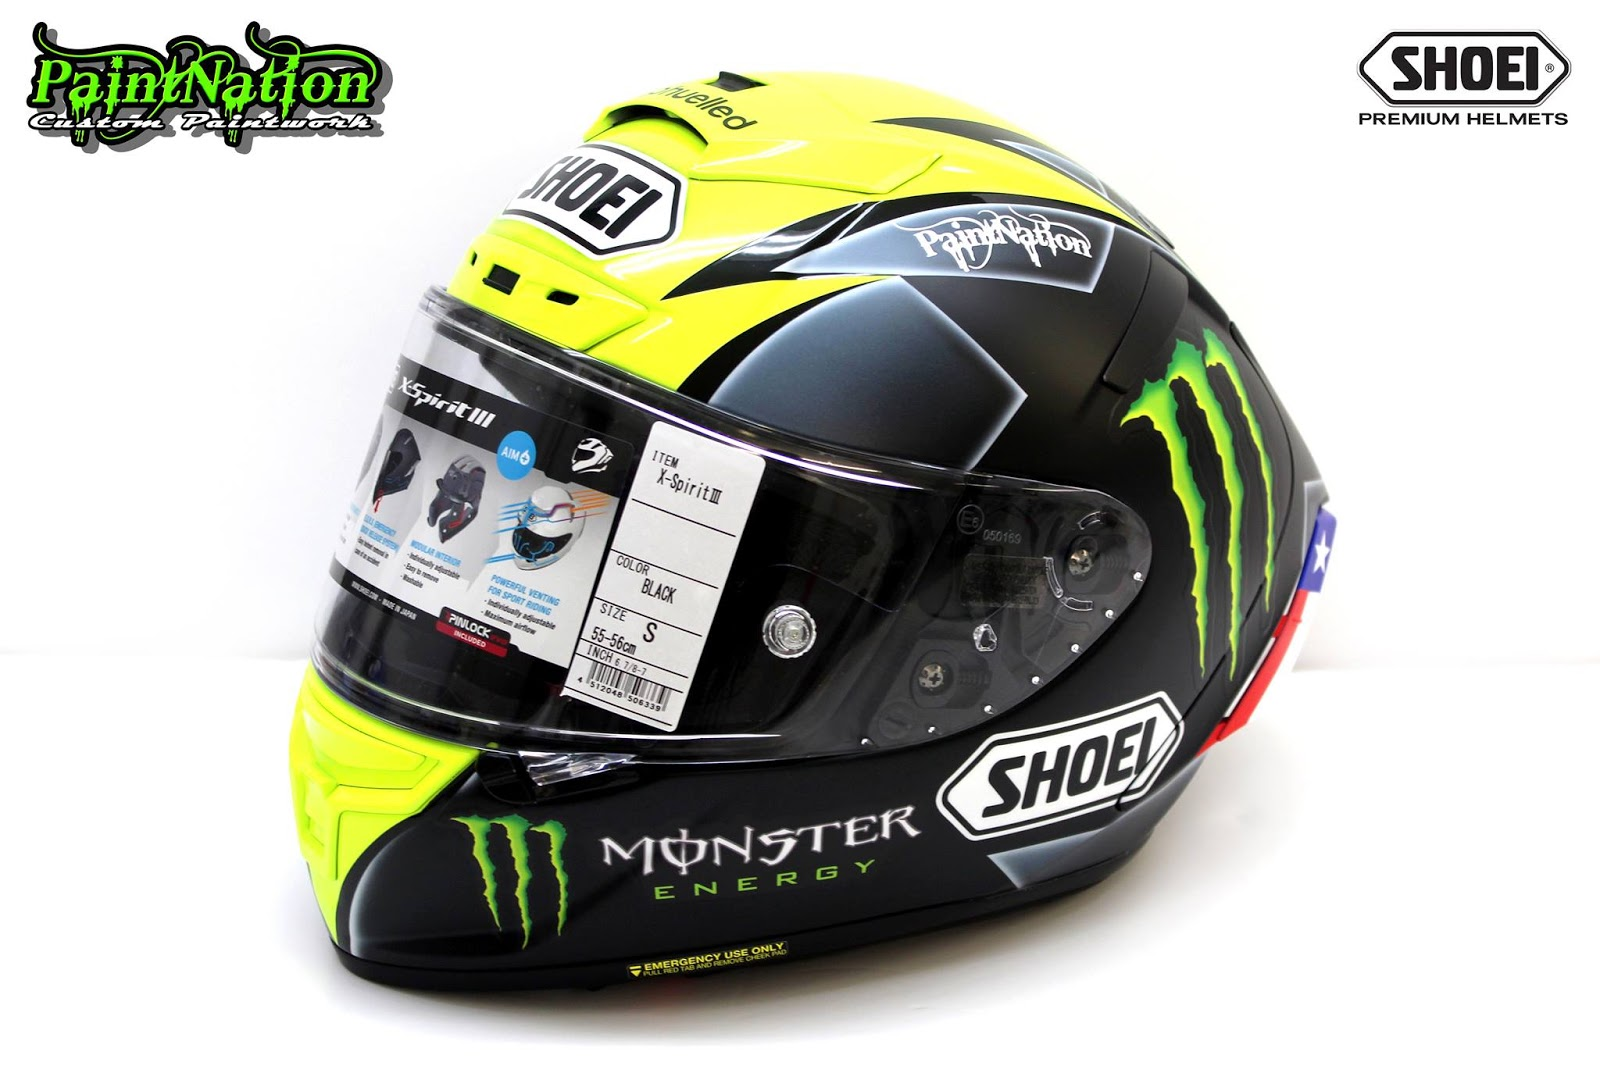 racing helmets garage shoei x spirit iii j ellison 2016 by paintnation. Black Bedroom Furniture Sets. Home Design Ideas